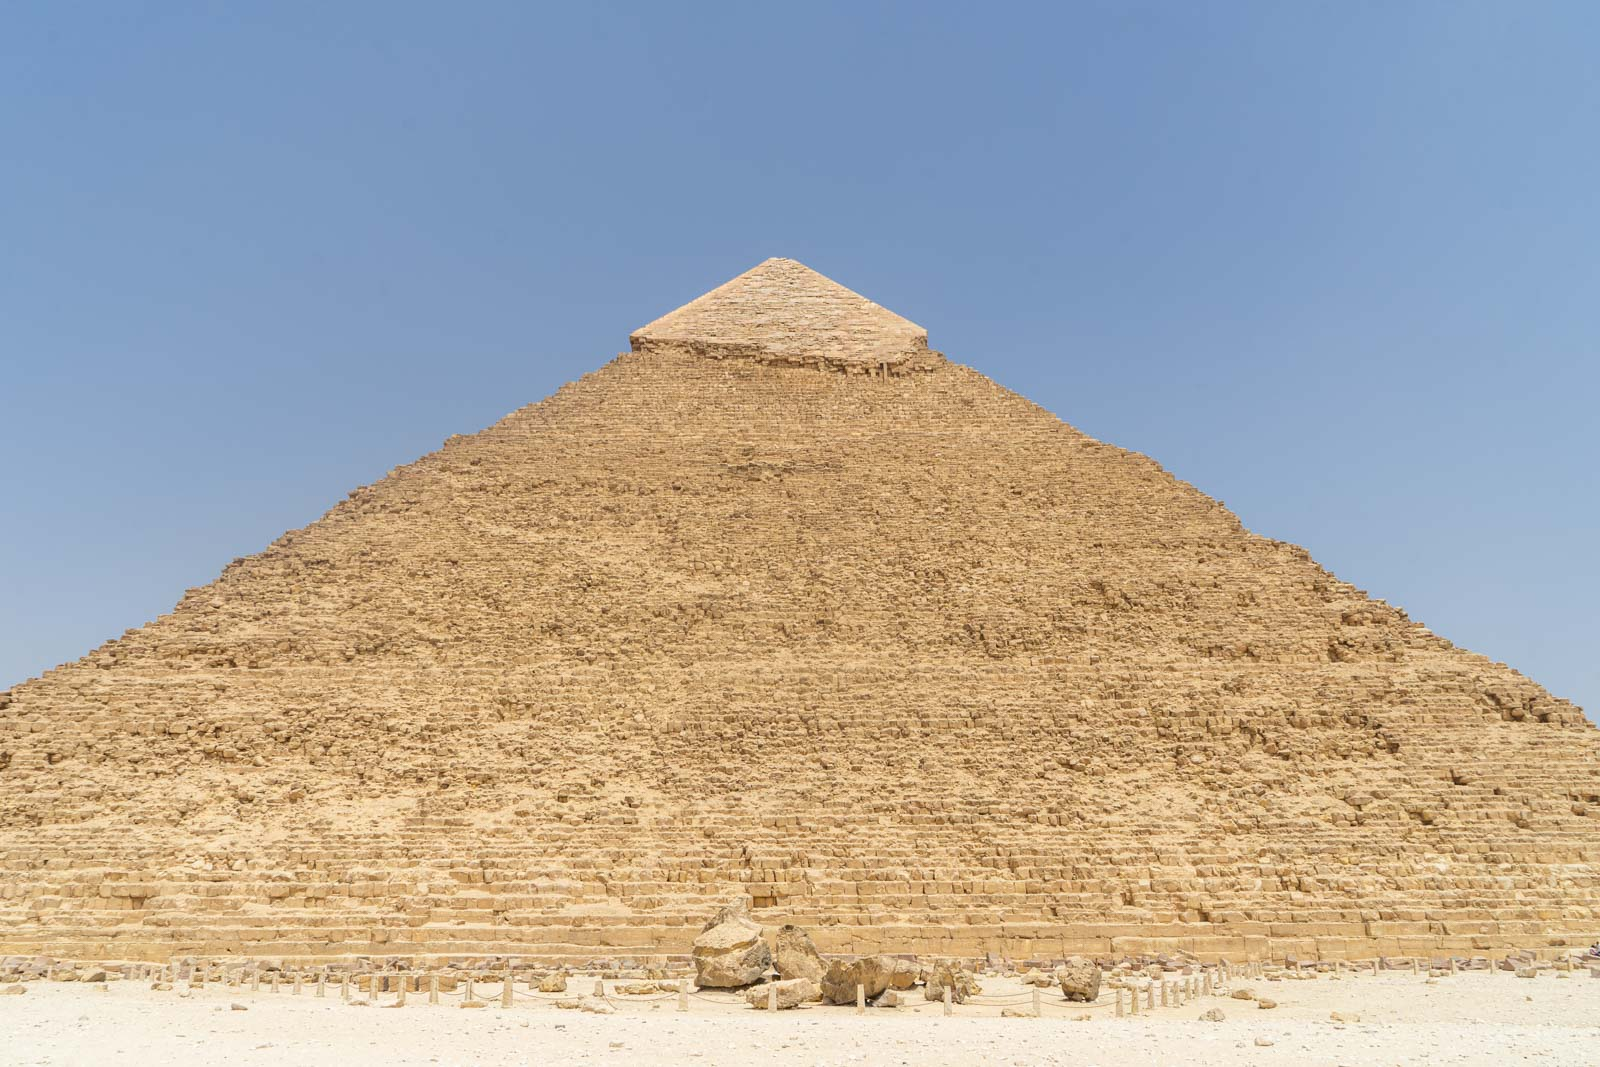 Visiting the Pyramids of Giza, Egypt